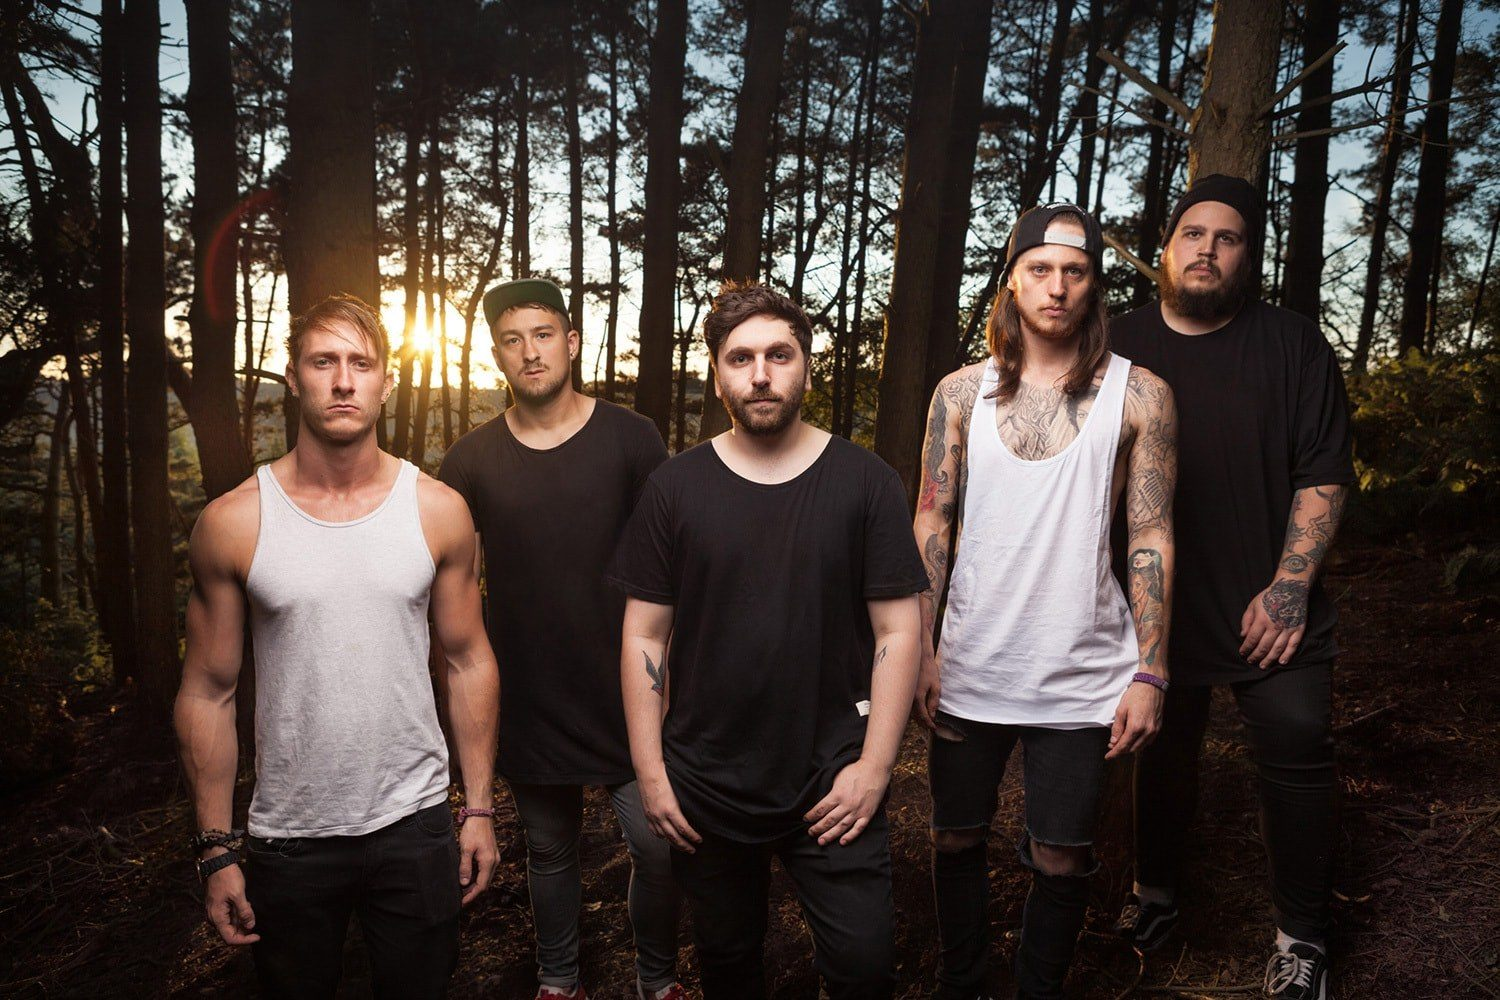 High Tides premiere new mini-album, 'I'm Not Giving Up, I'm Just Starting Over'